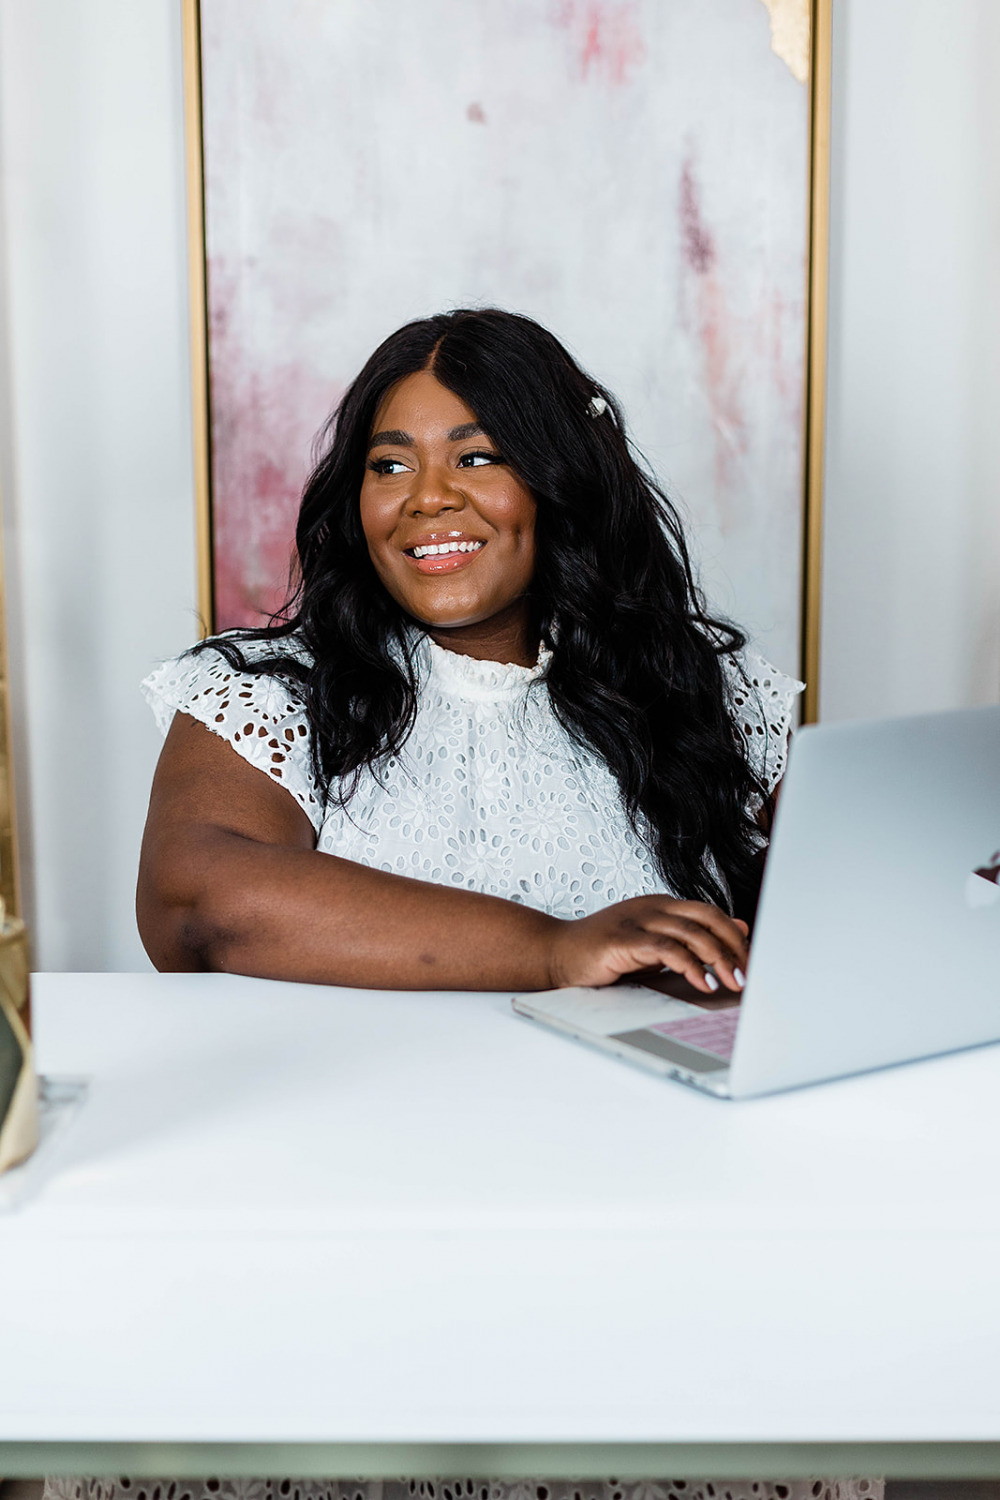 New Website, Smash Creative, Boho Blush Web Design, Musings of a Curvy Lady, Eloquii Puff Sleeve Dress, Cottage core, Plus Size cottage core dress, Black Woman On her Phone, Black Woman Shopping online, Black woman working in her home office smiling